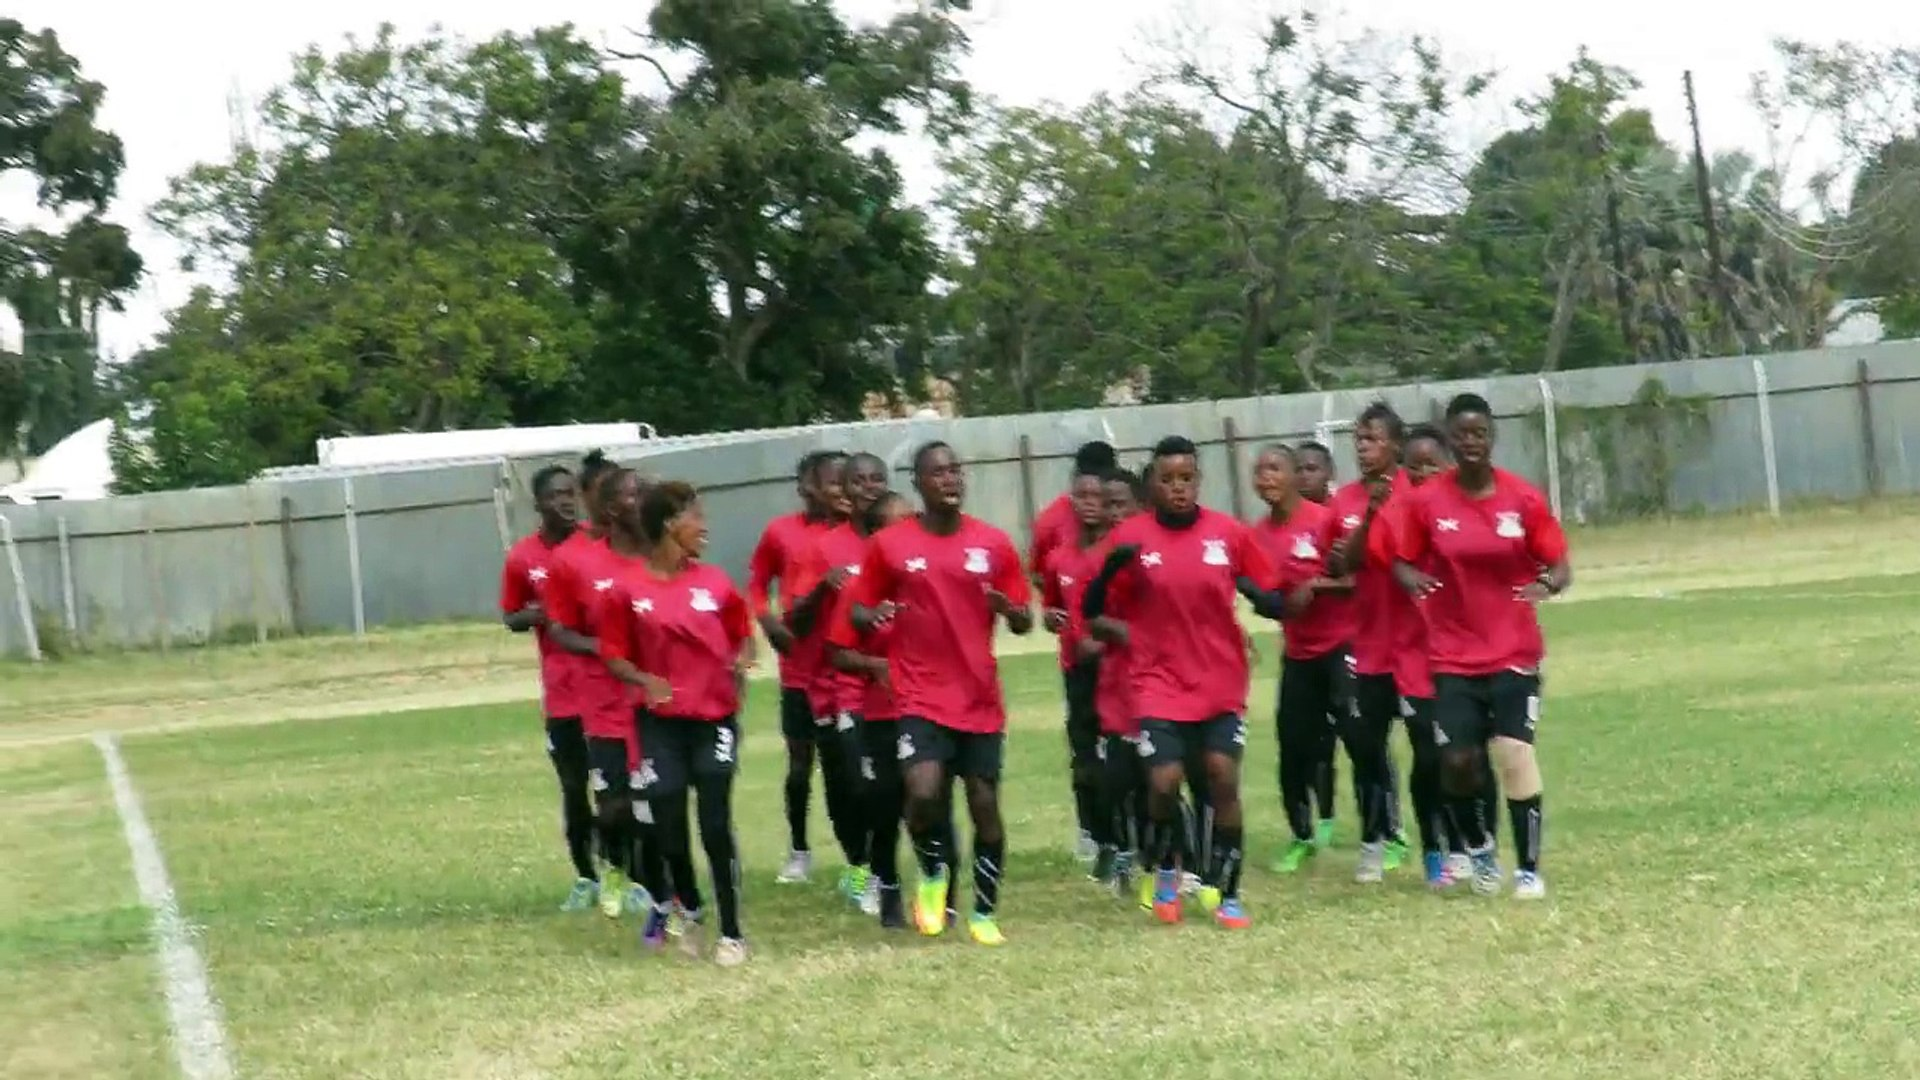 WOMEN TEAM FIRE UP FOR ZIM CHALLENGEThe Zambia Women National Team lit up their training session wit